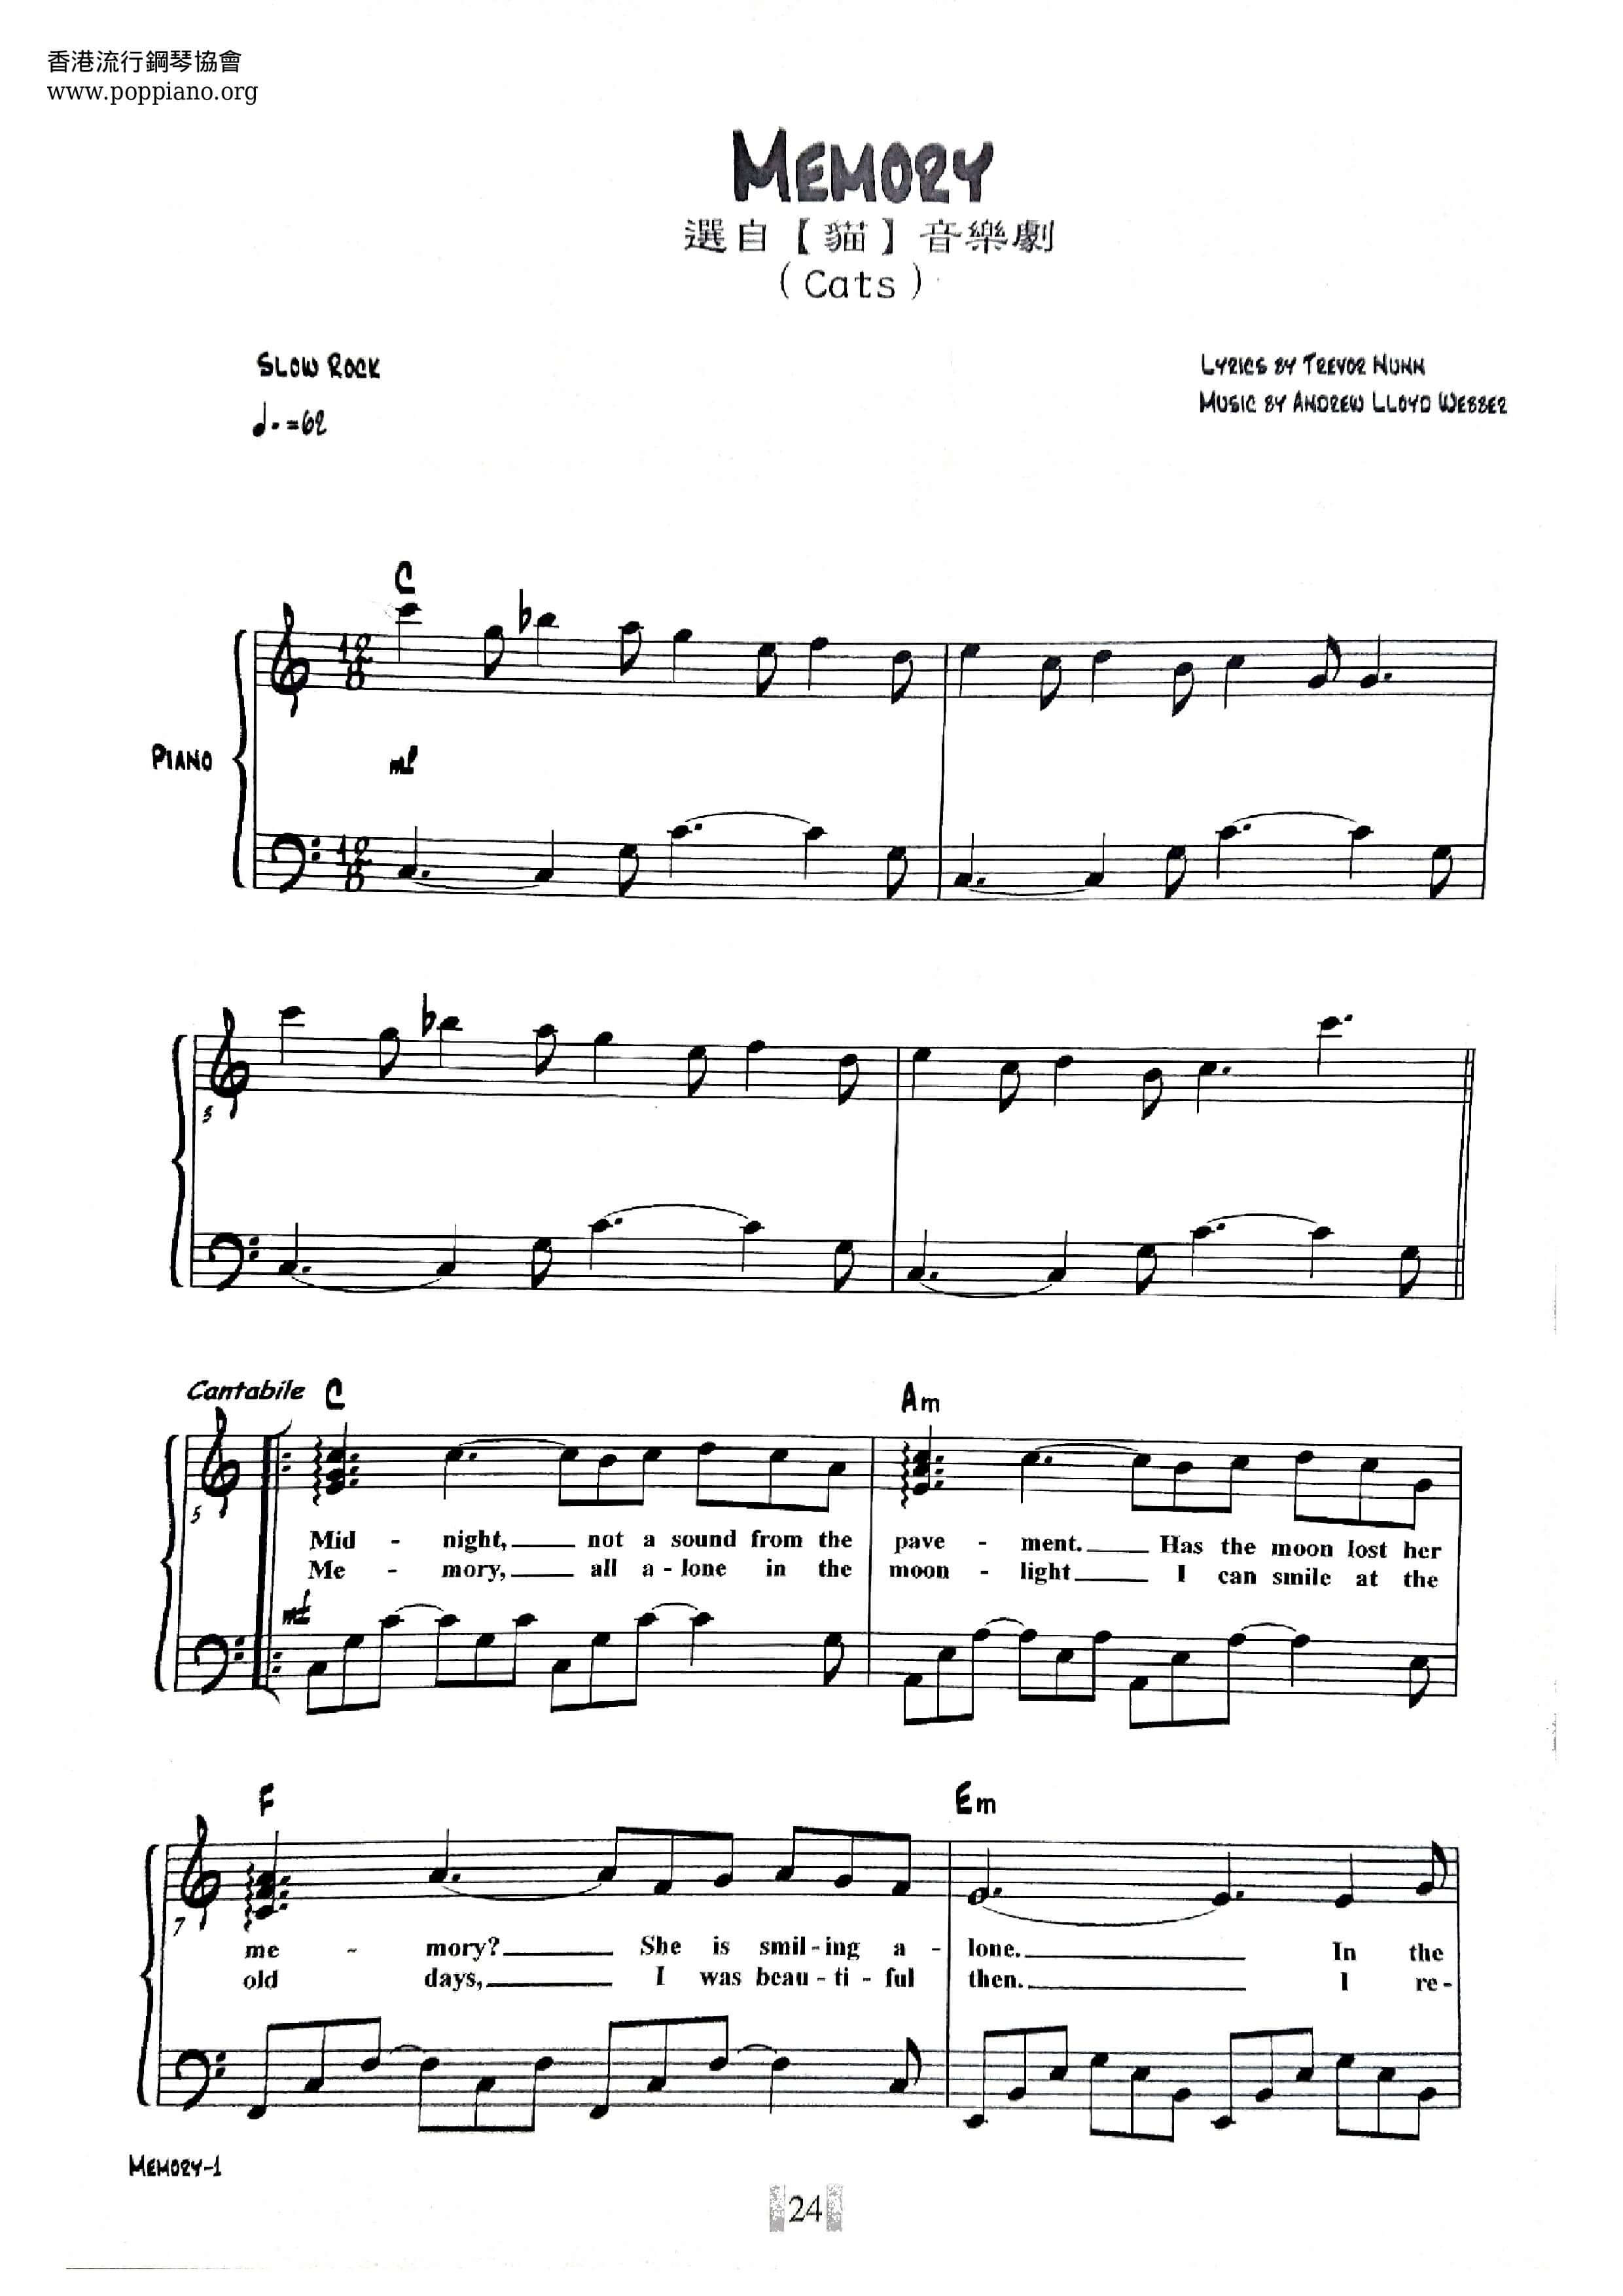 Andrew Lloyd Webber Memory From Cats Sheet Music Pdf Free Score Download